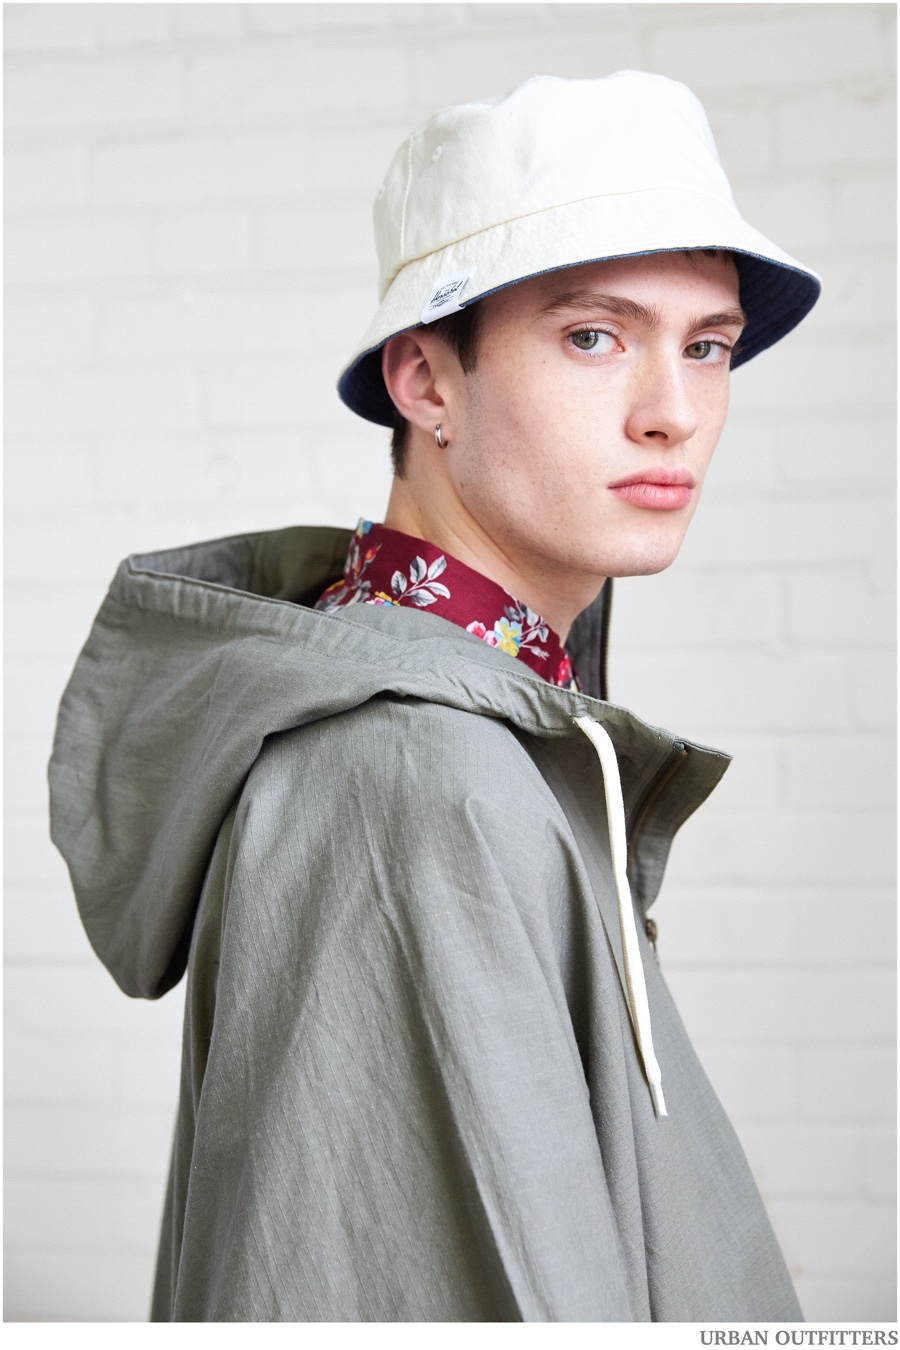 90s Men's Styles Channeled For Urban Outfitters Spring